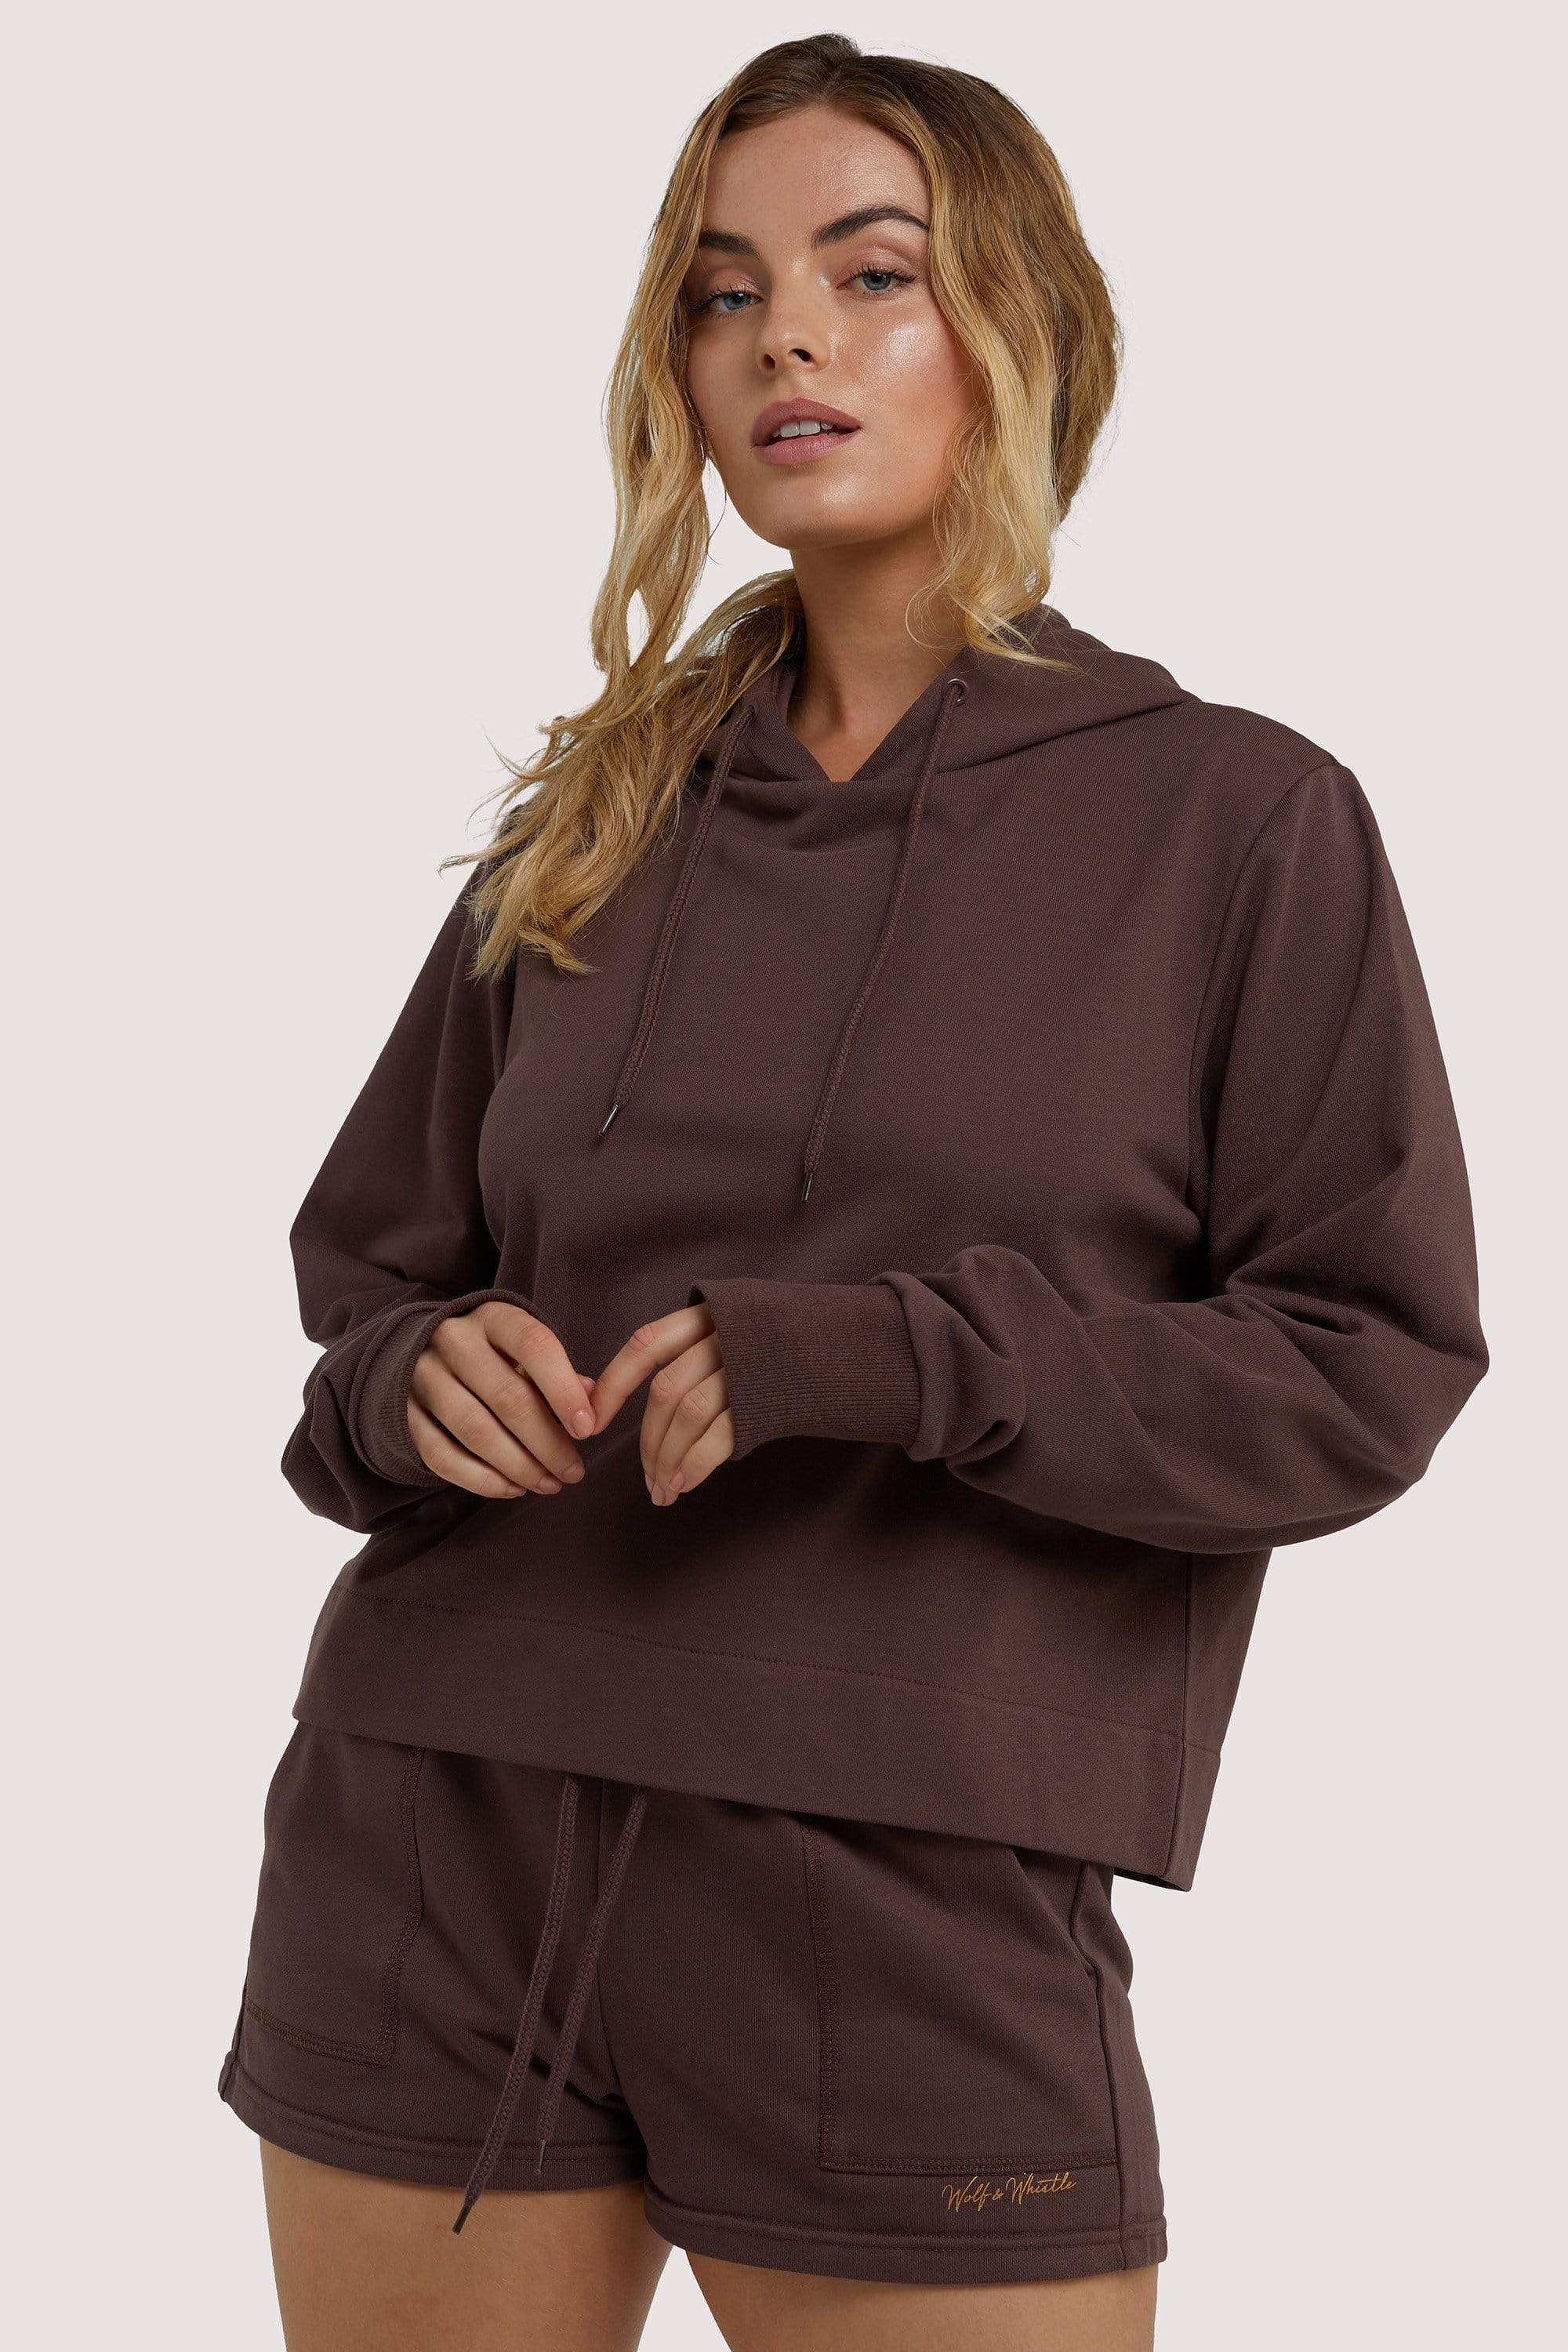 Wolf & Whistle Brown Hooded Top UK 8 / US 4